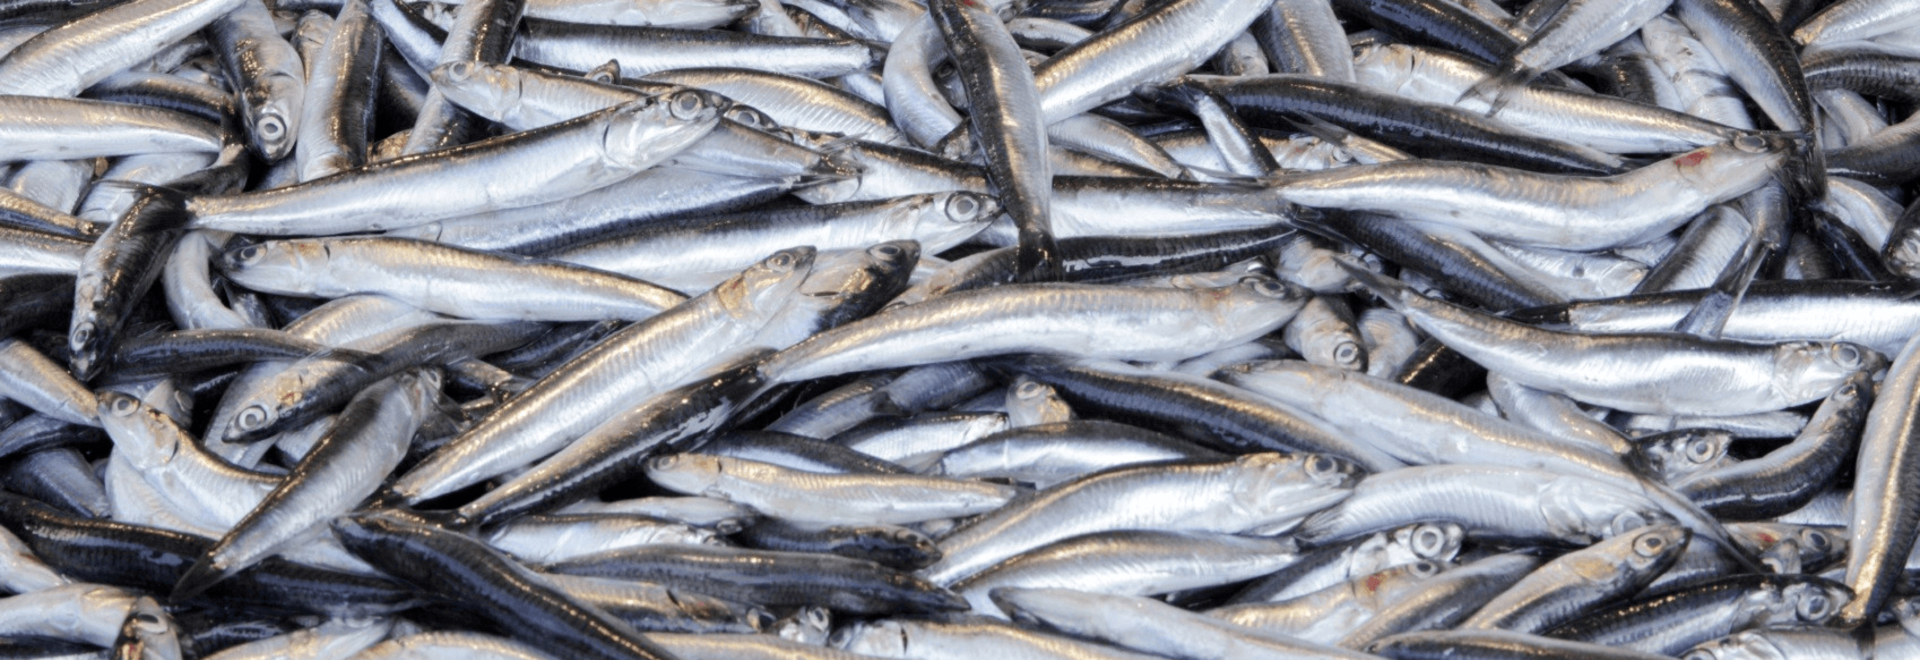 Salmon feed producers are being challenged to find an alternative to fishmeal from sources such as anchovies.